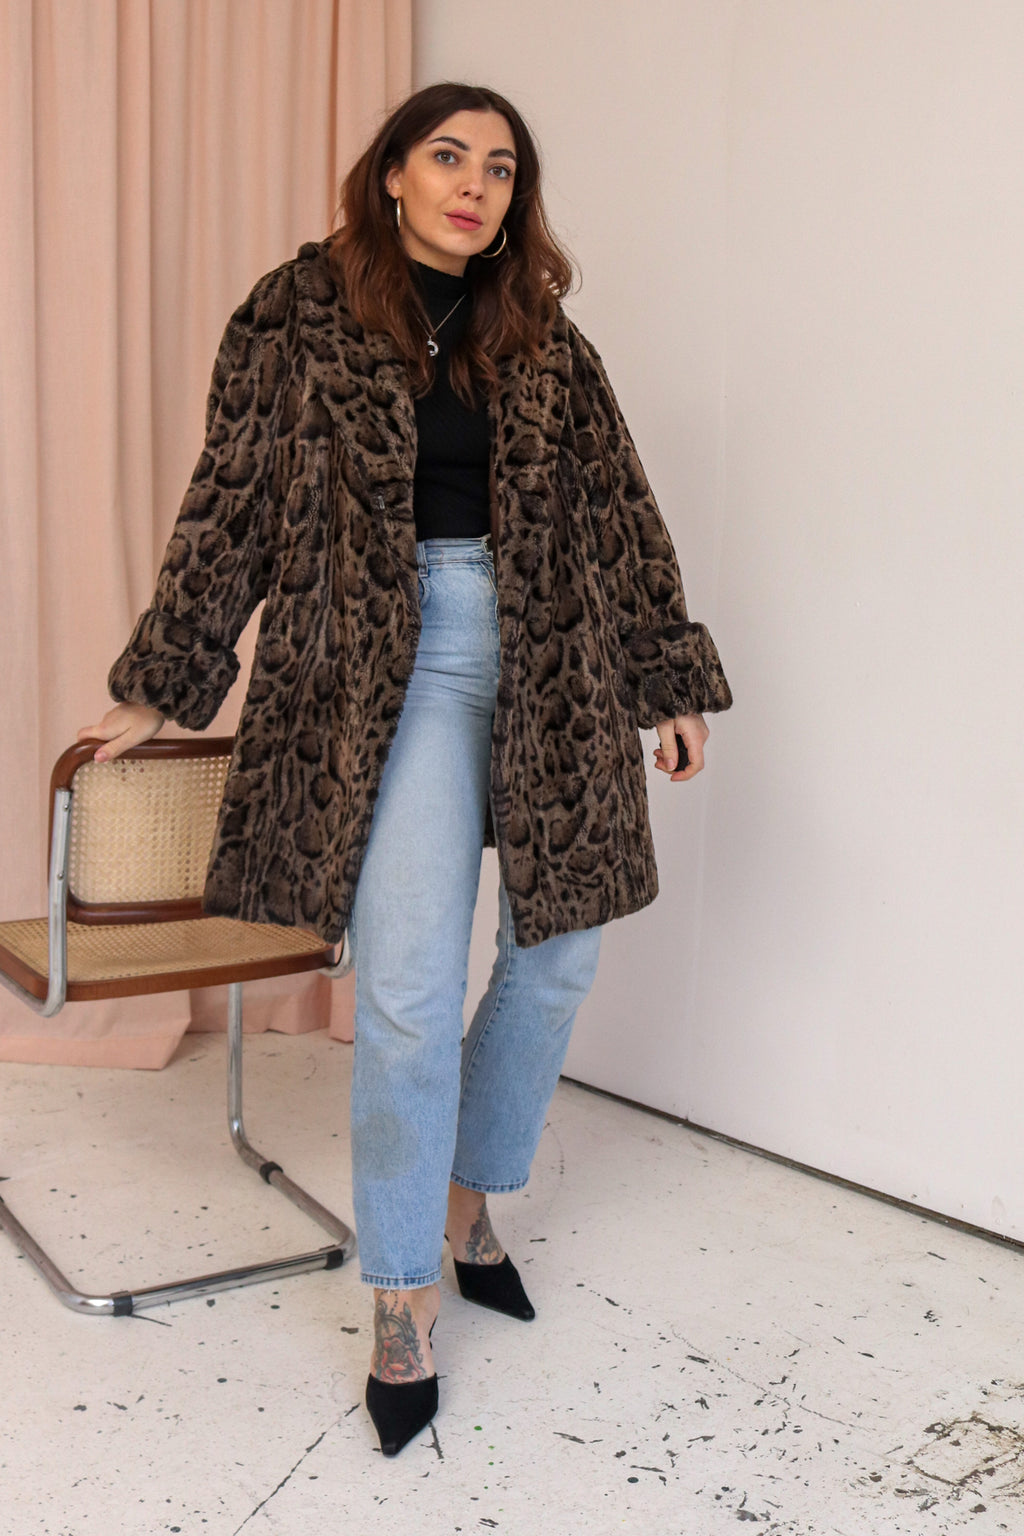 VintageFaux Fur Coat in Leopard Print - M - Dirty Disco